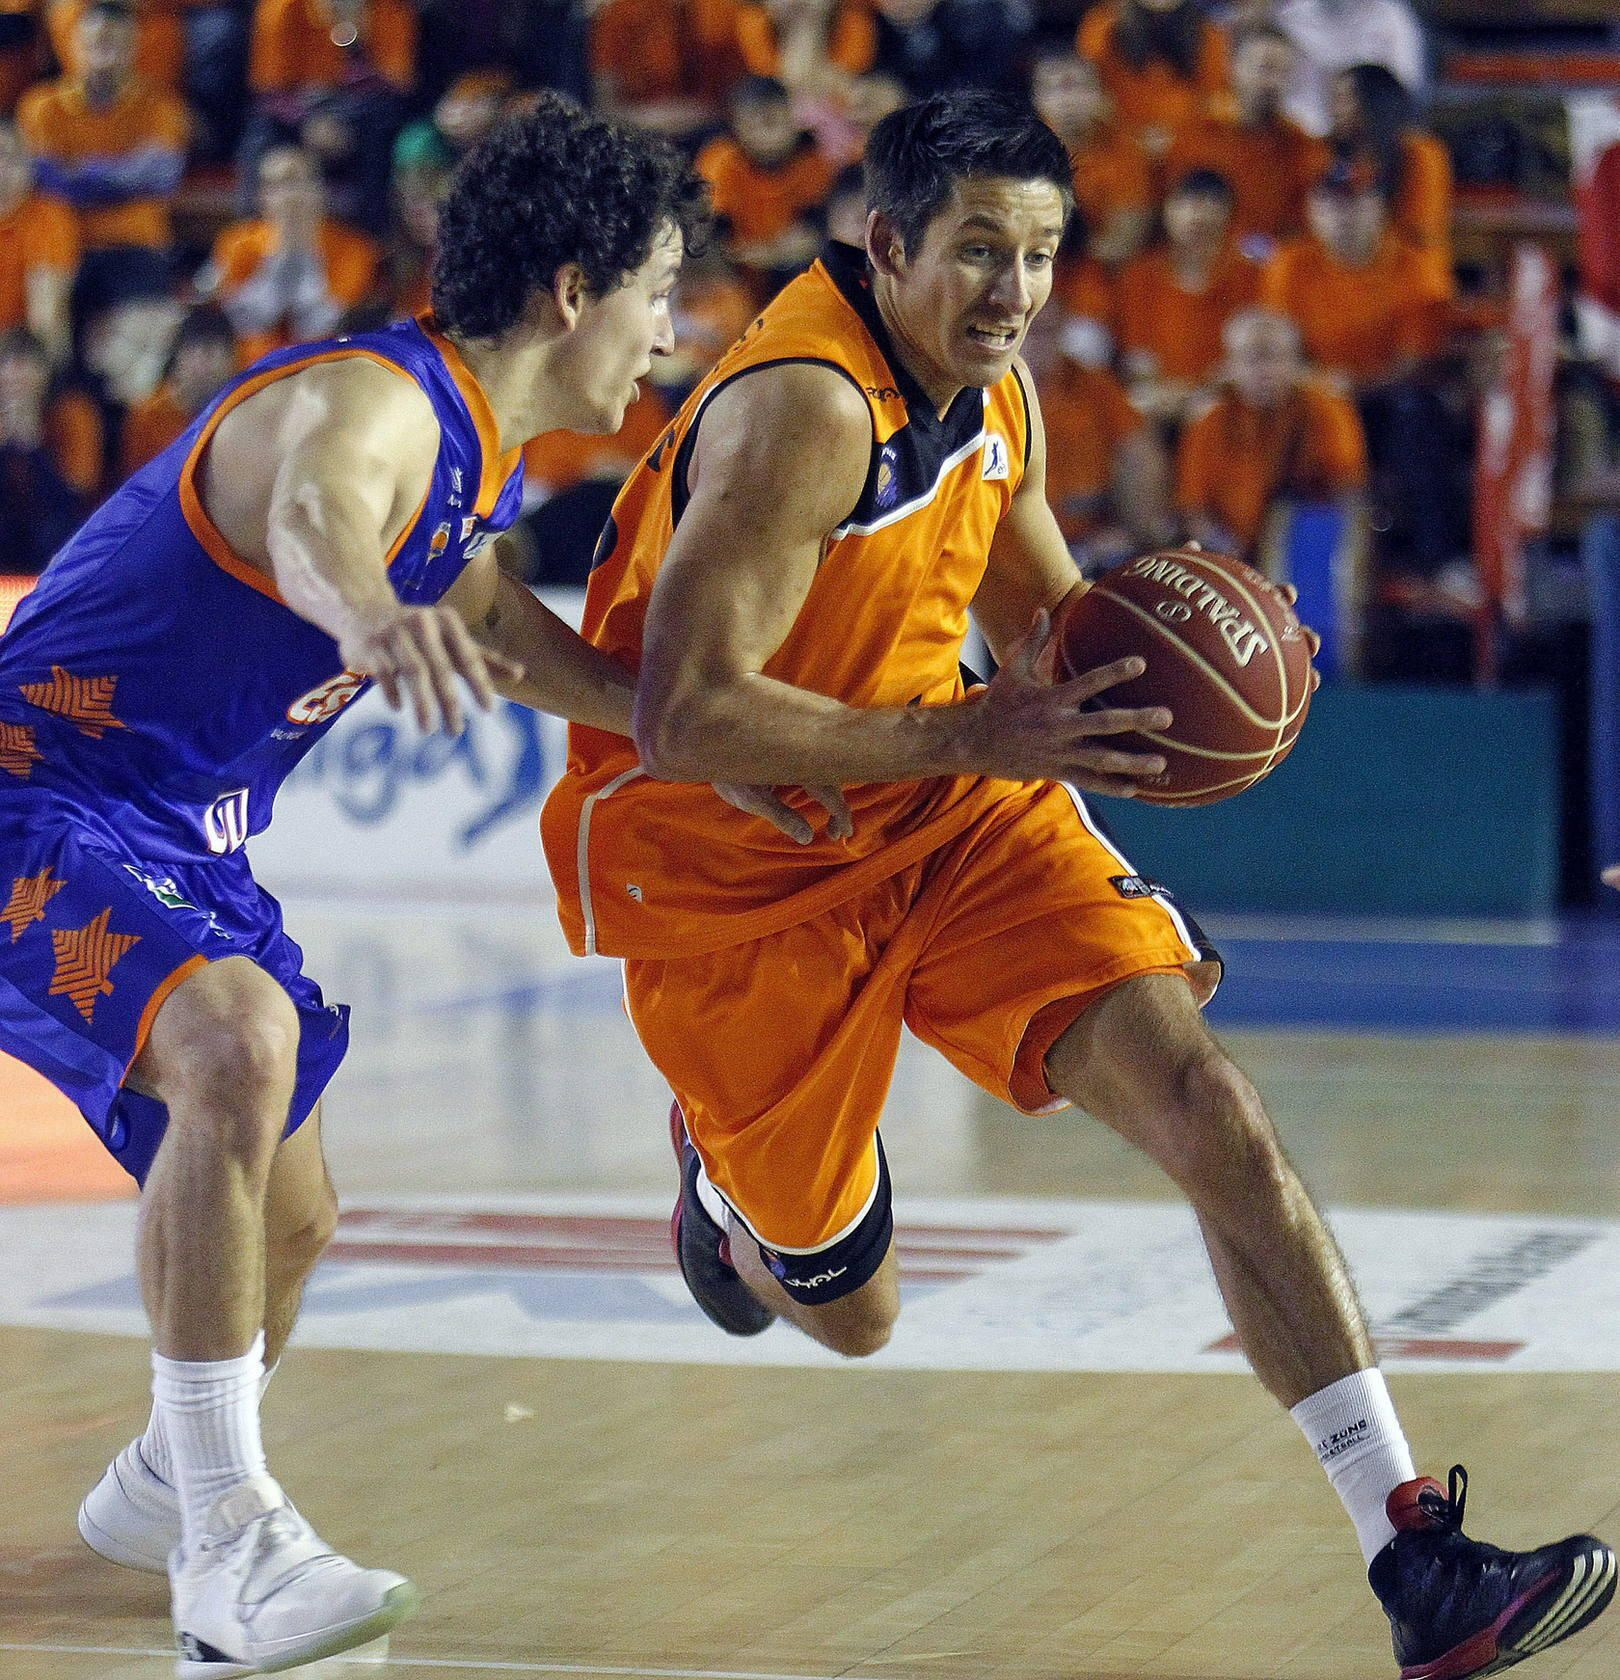 Partido entre el Fuenlabrada y el Valencia Basket